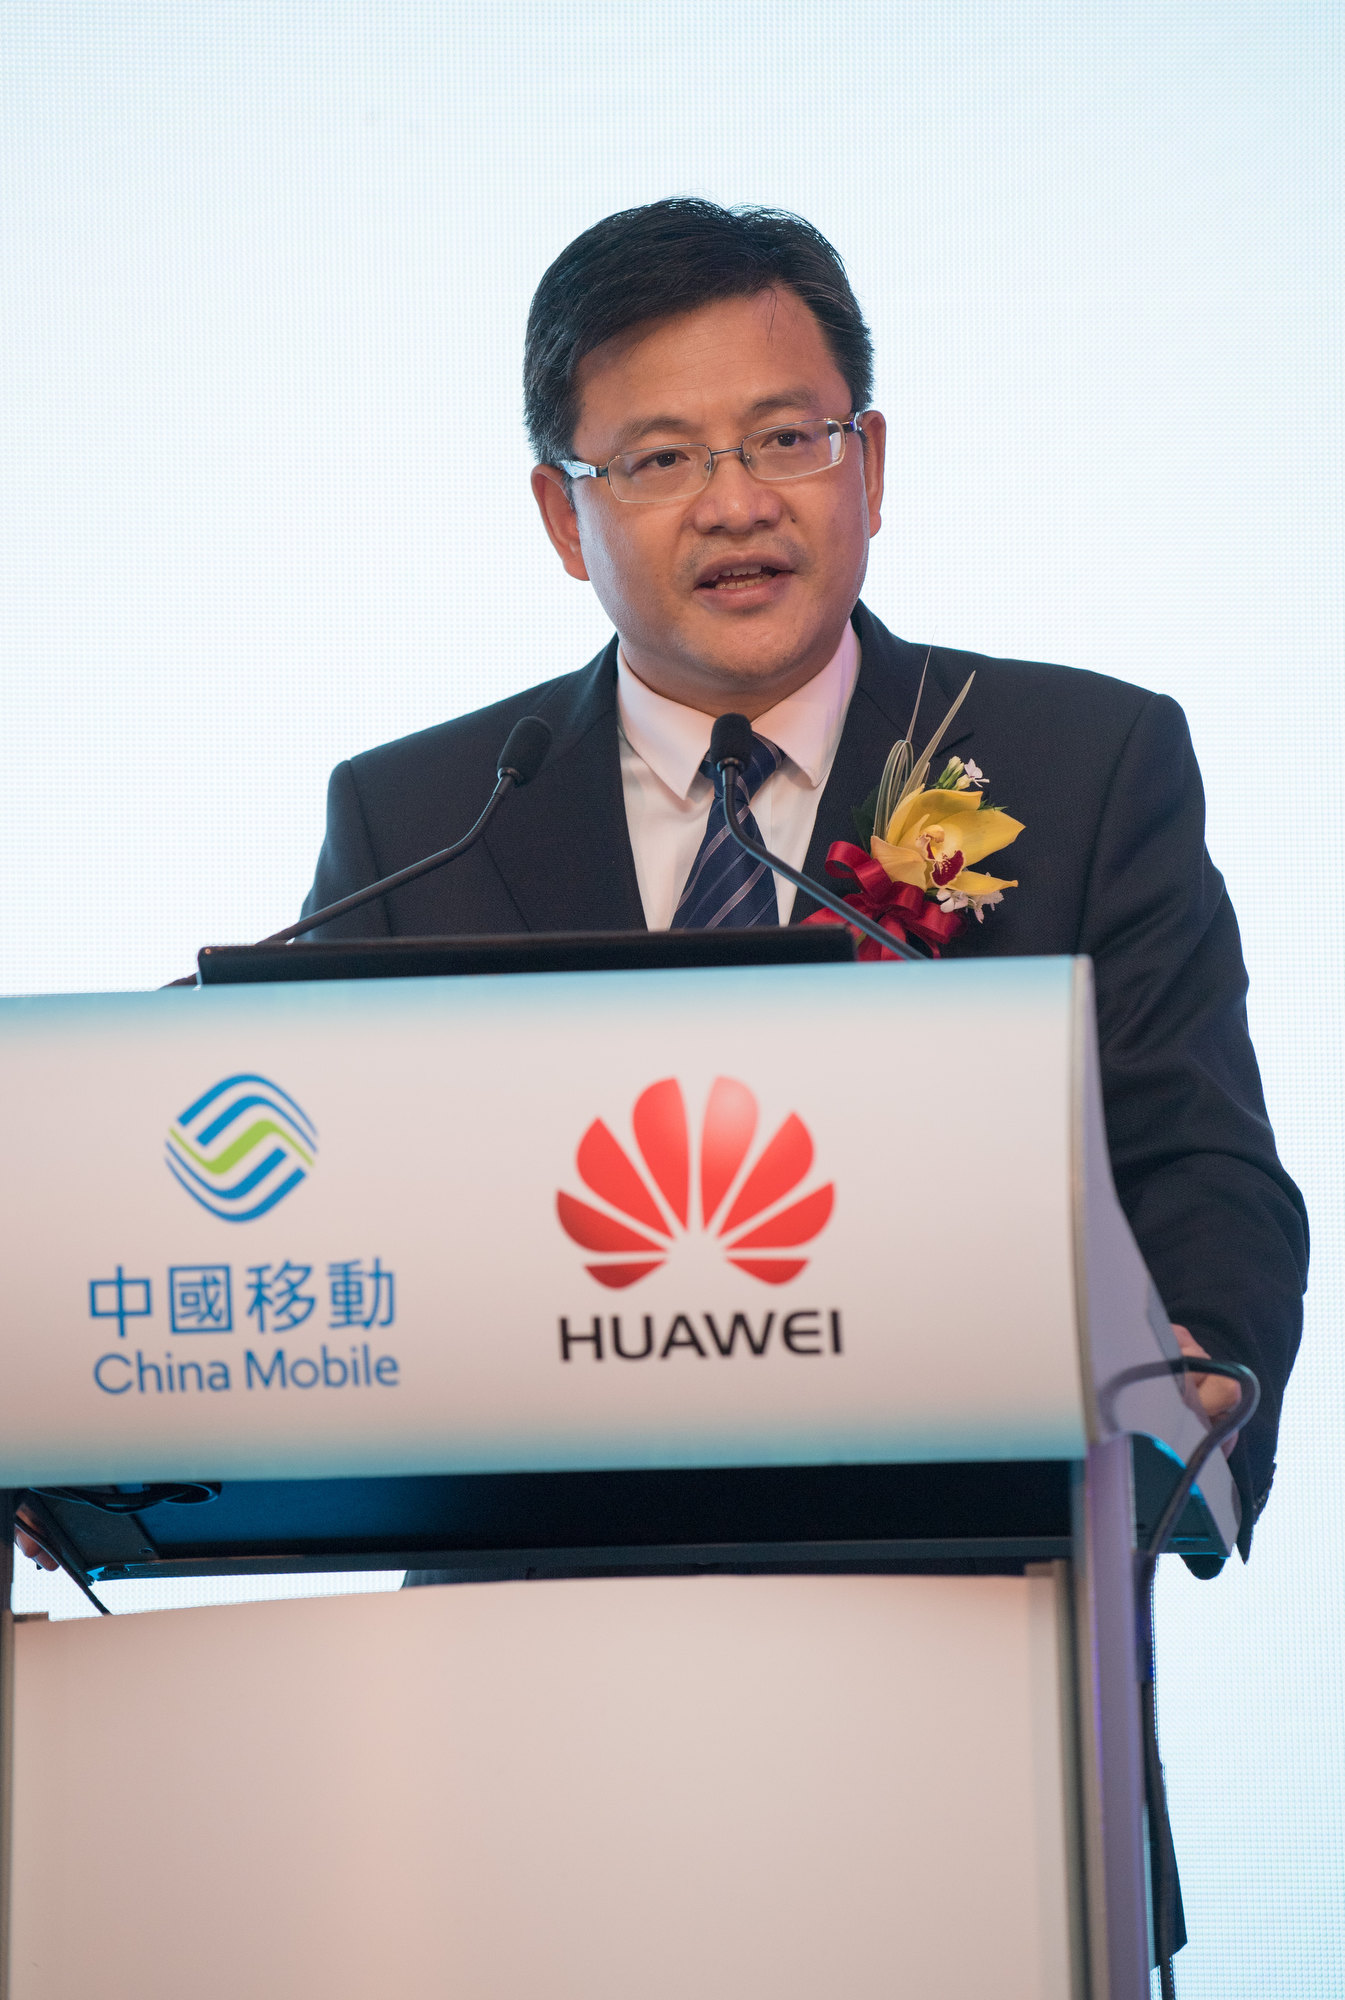 China Mobile Hong Kong and Huawei join forces to mark 4.5G Mobile Network Milestone